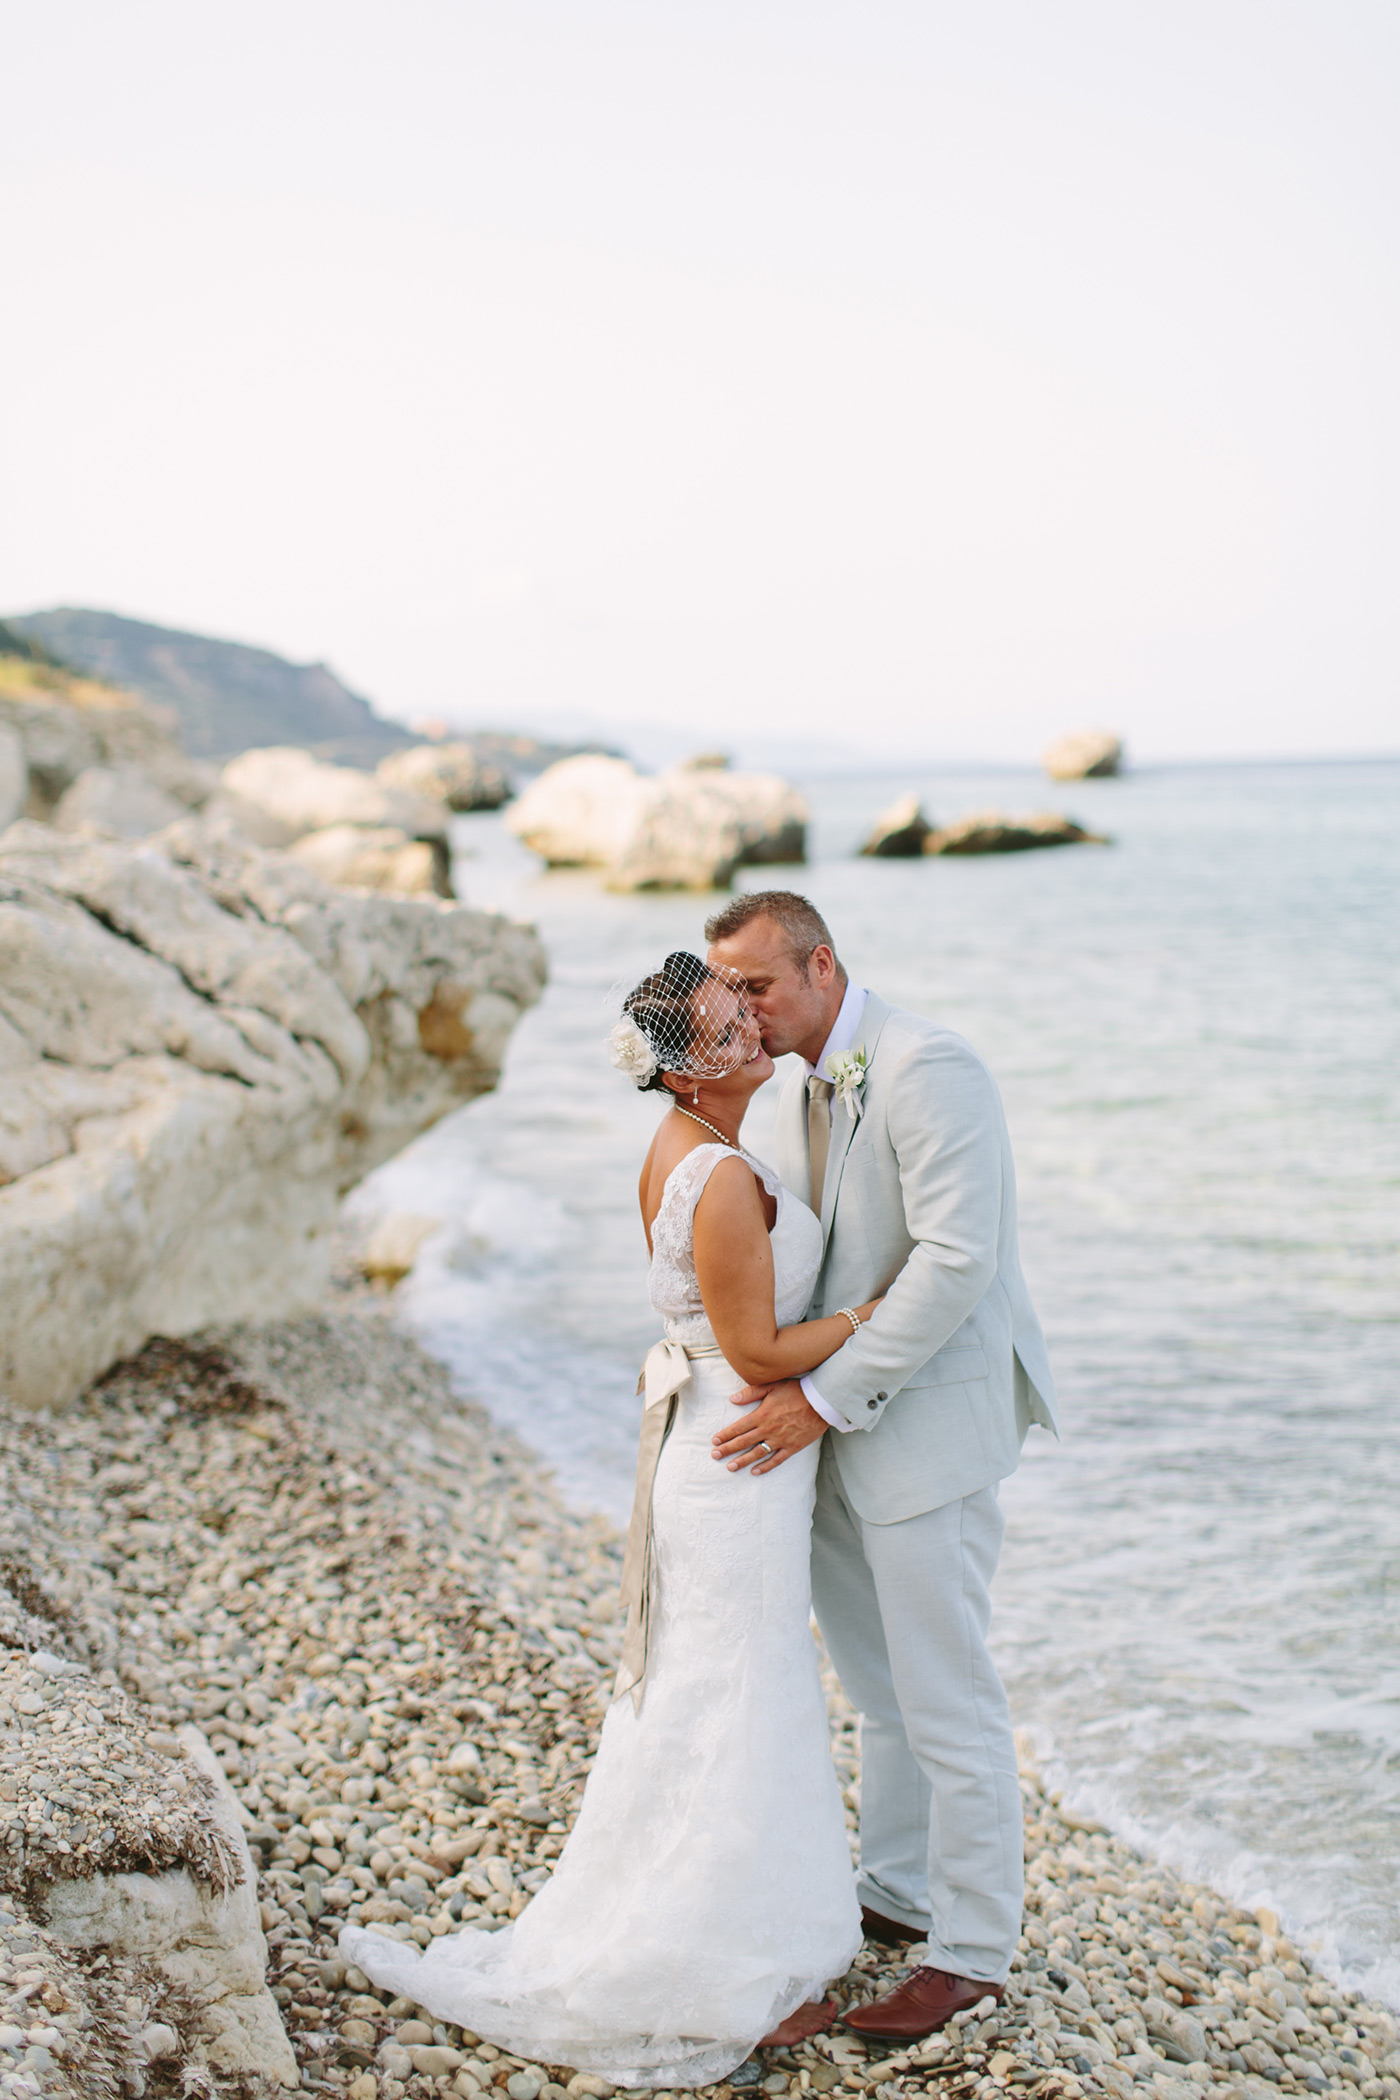 Weddings Skala Kefalonia - Weddings in Kefalonia - Kefalonia Wedding Hotel